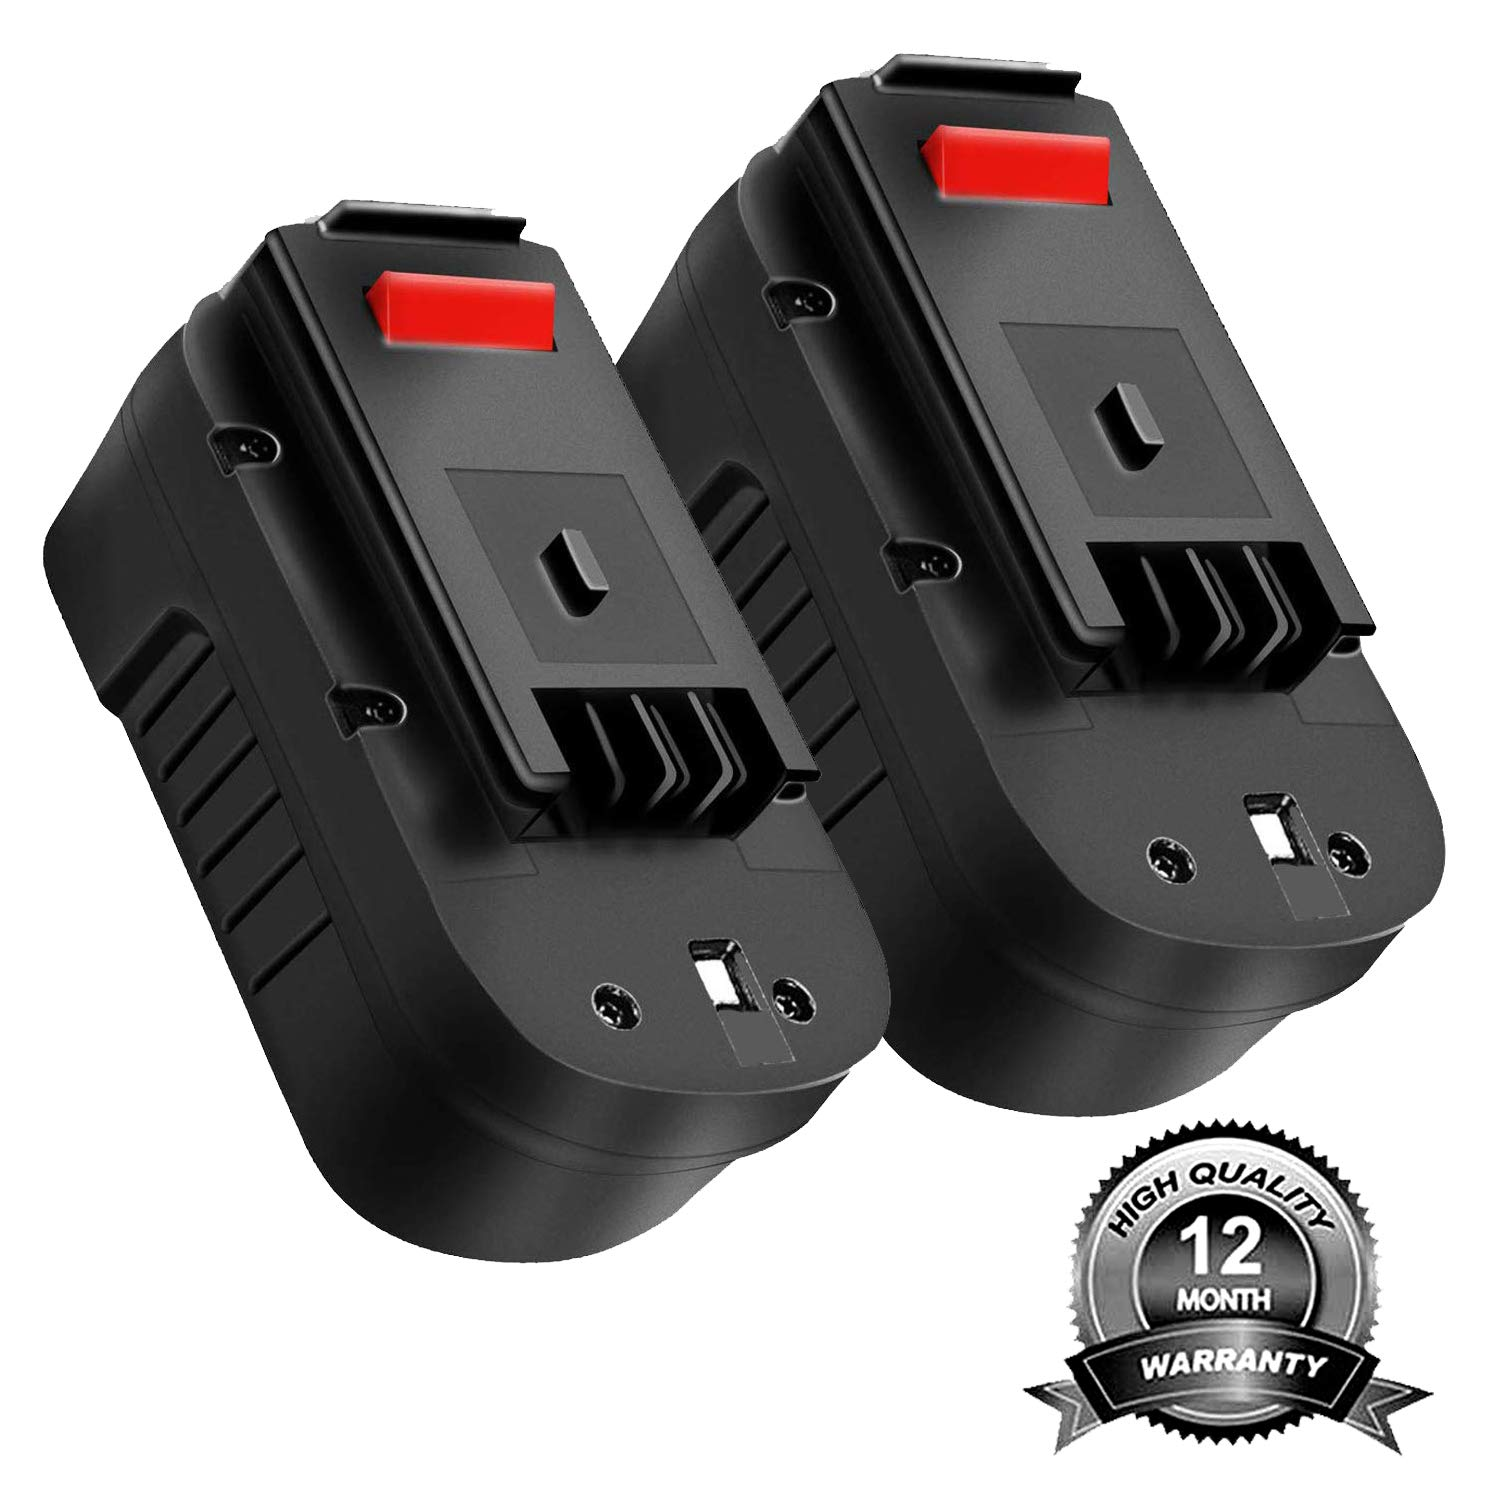 2Pack HPB18 3.6Ah 18V Replacement for Black and Decker Battery, Power Tool Battery for B&D HPB18-OPE 244760-00 A1718 FSB18 FEB180S A18 FS18FL Firestorm Cordless Power Tools